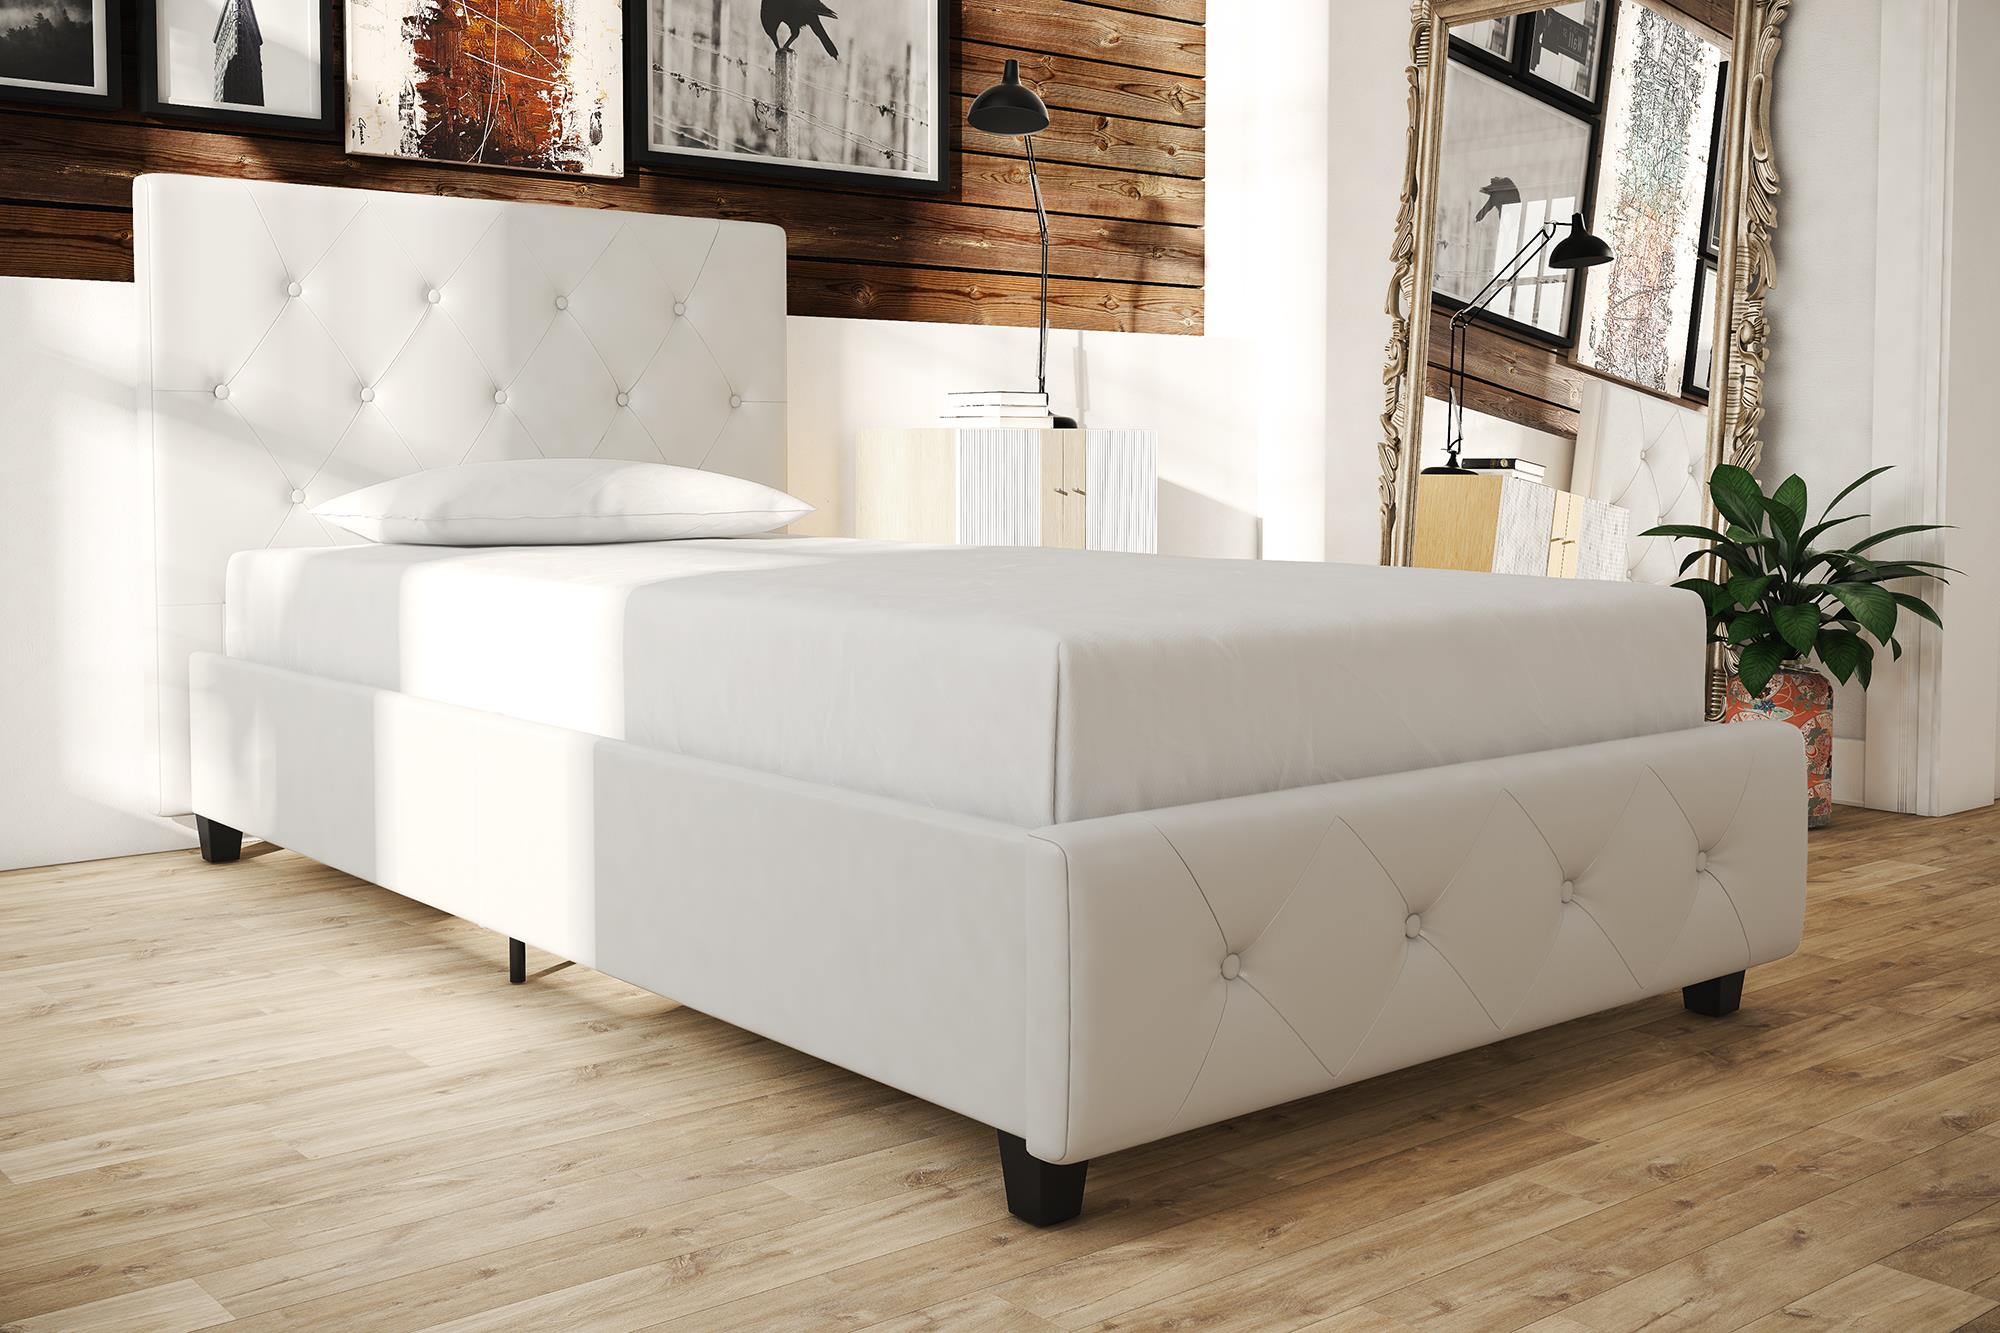 Beau DHP Dakota Upholstered Faux Leather Platform Bed With Wooden Slat Support  And Tufted Headboard And Footboard